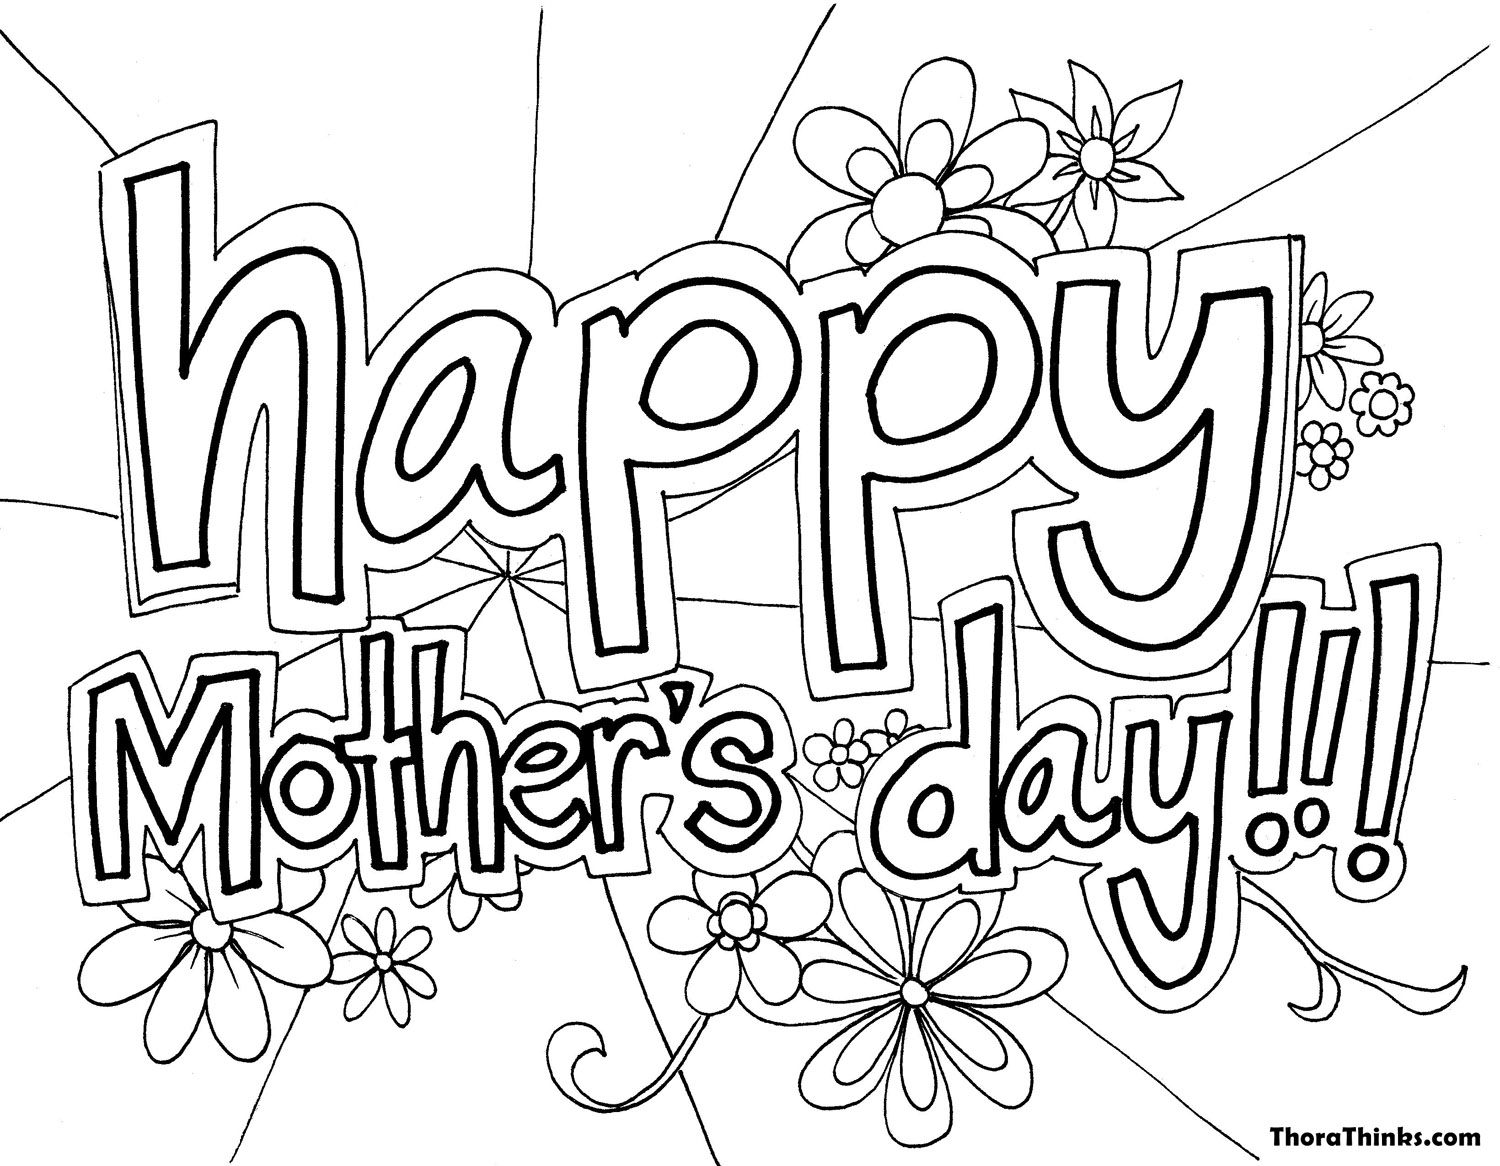 mothers day coloring pages grandma Free Large Images Mothers